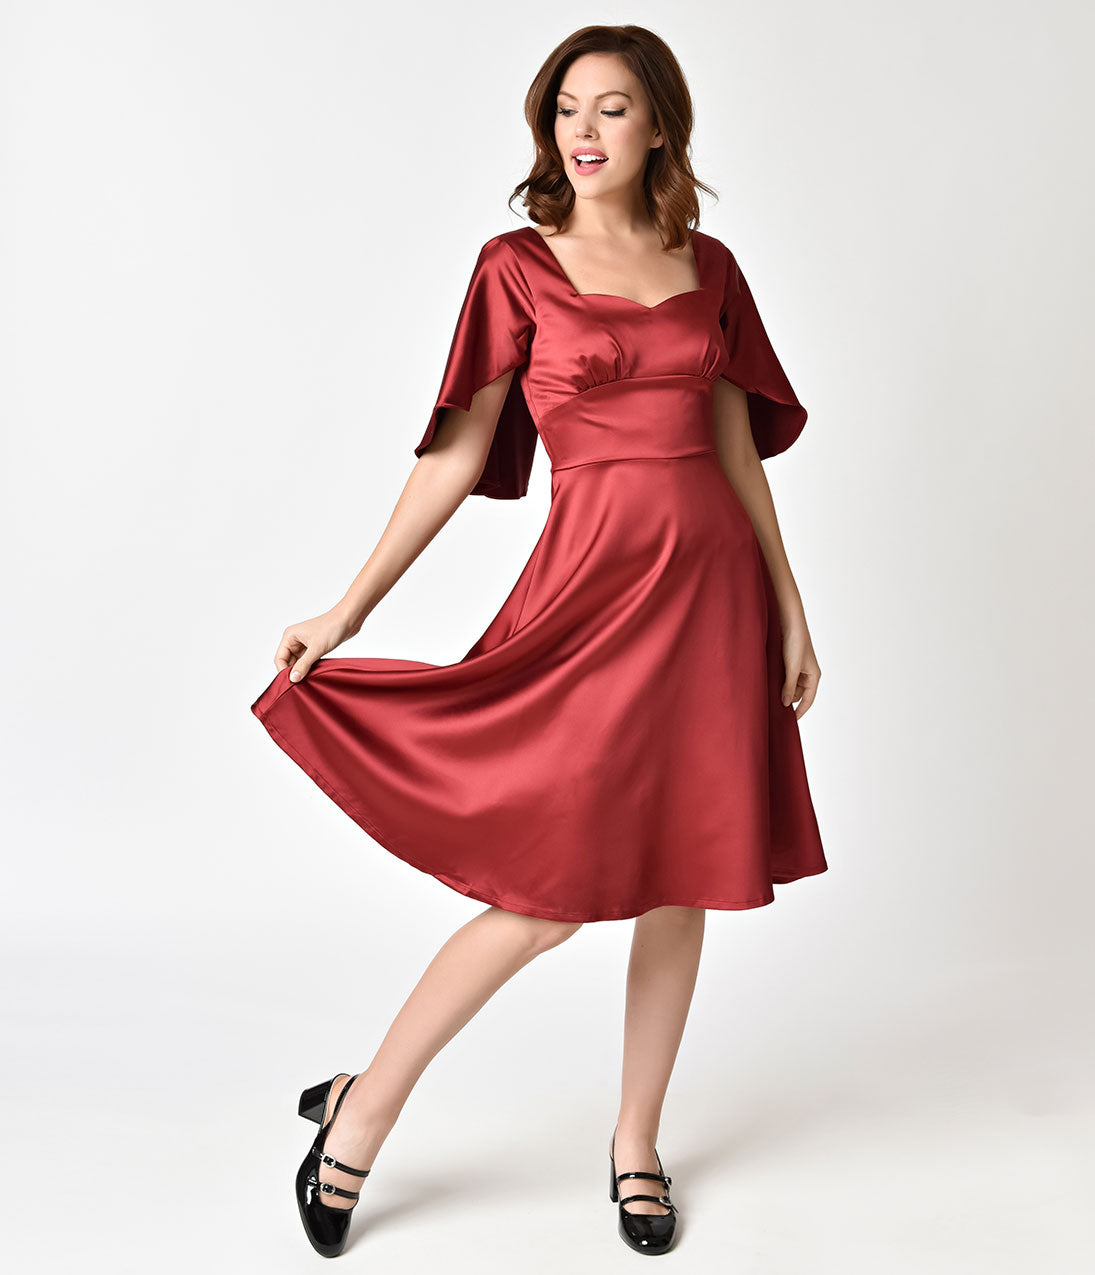 1940s Dresses | 40s Dress, Swing Dress Voodoo Vixen 1940s Burgundy Red Satin Mariah Cape Dress $37.00 AT vintagedancer.com